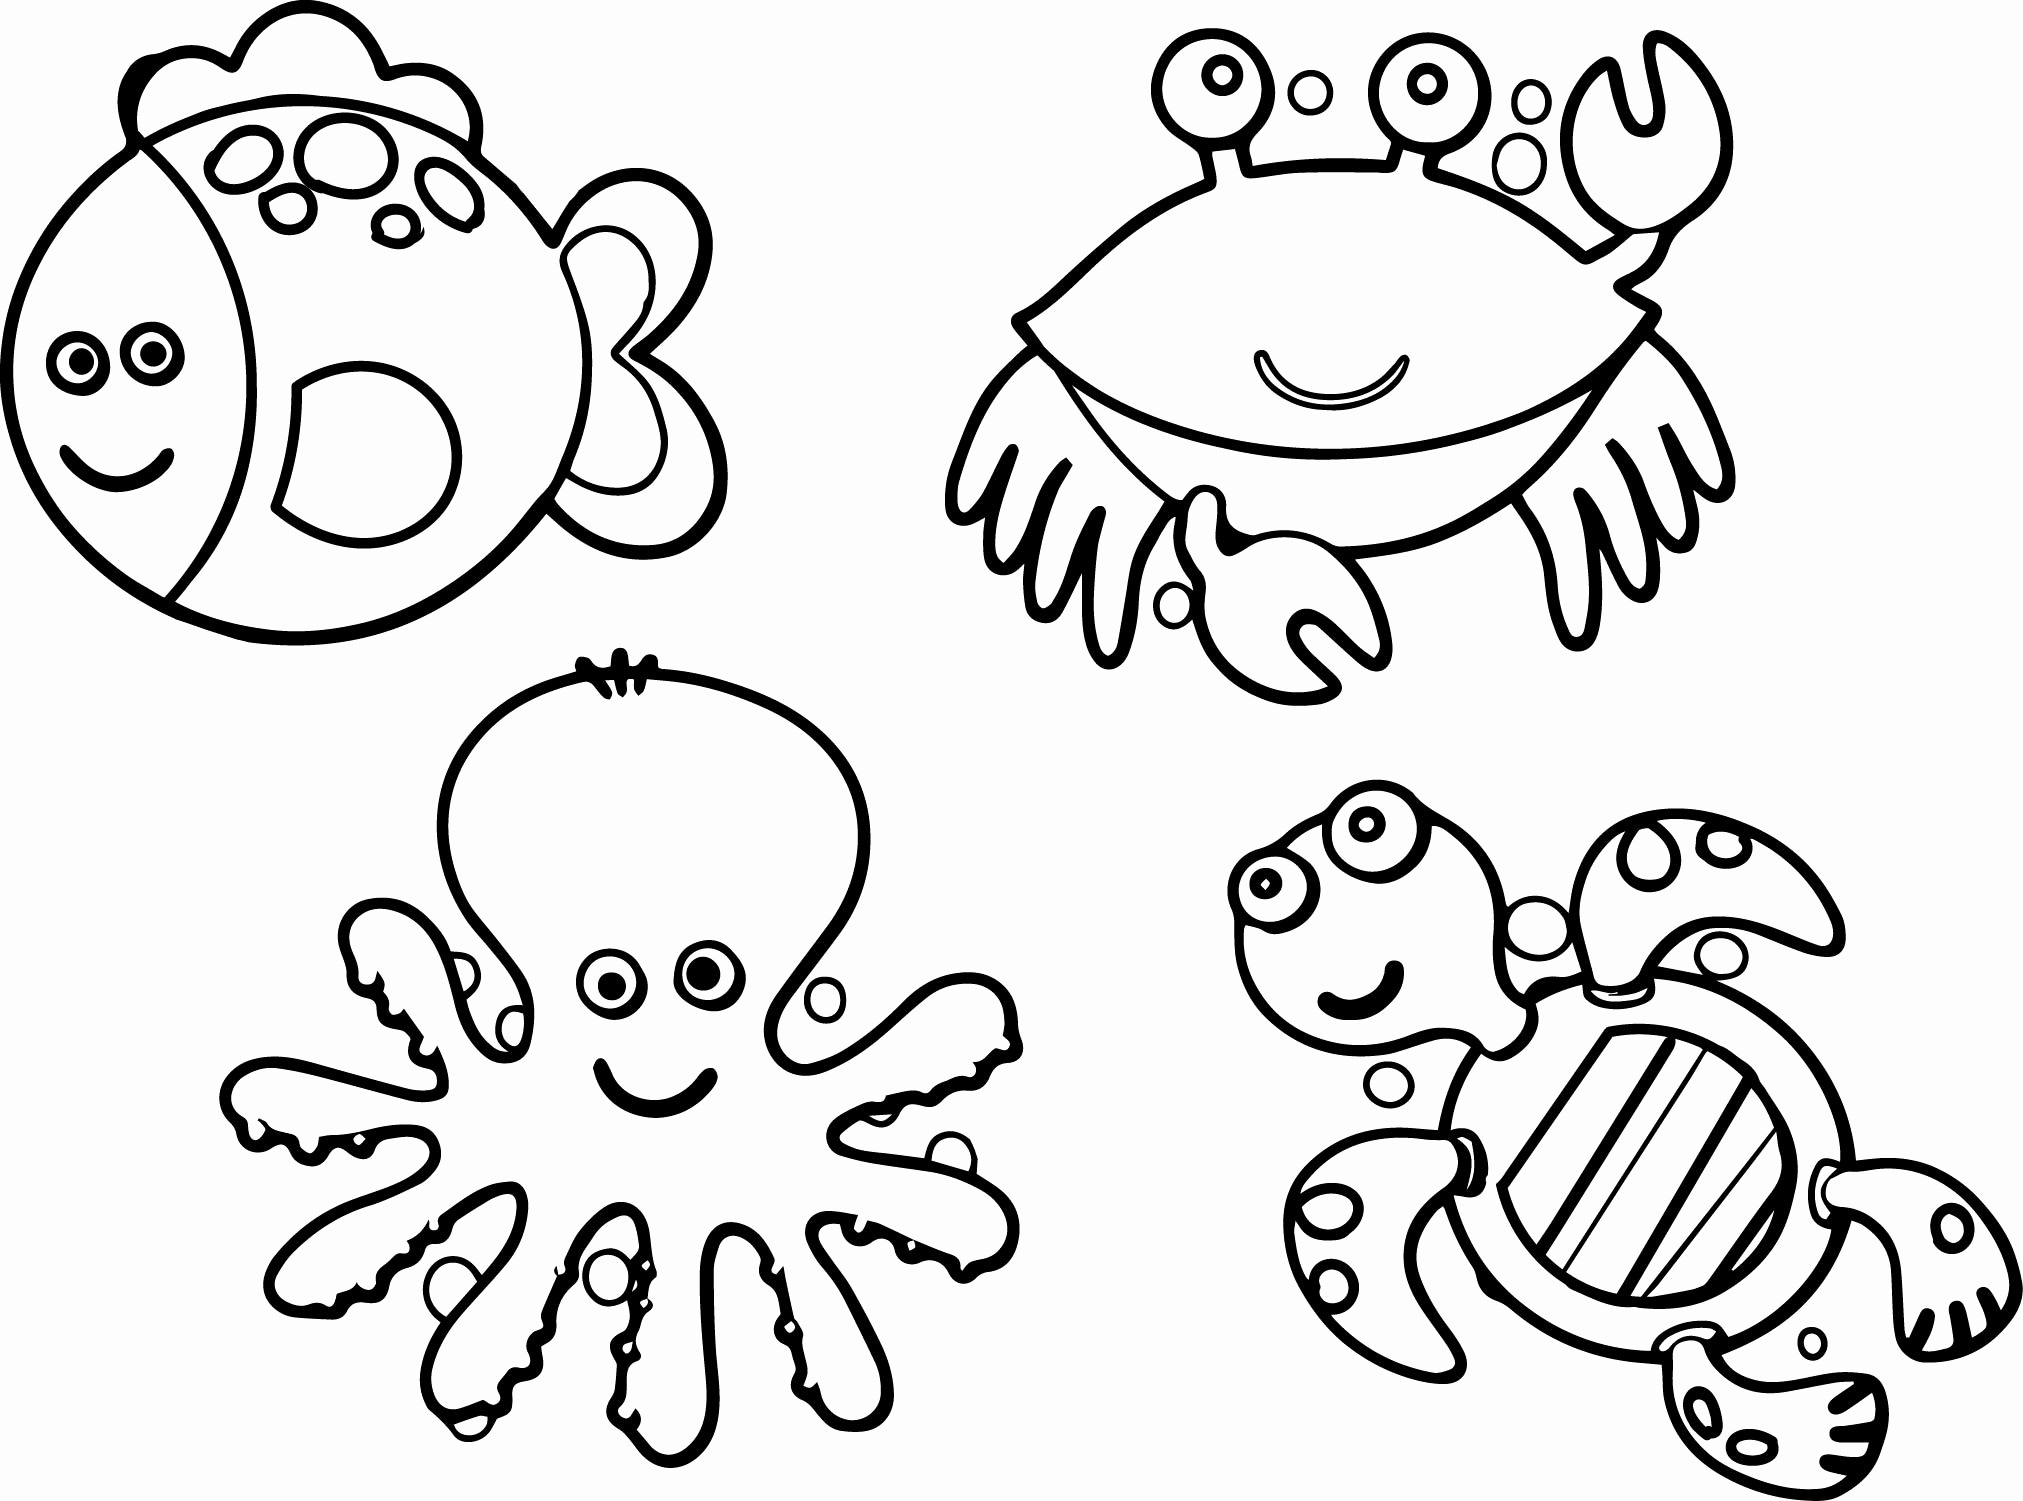 It is a graphic of Animal Coloring Pages Printable regarding baby animal